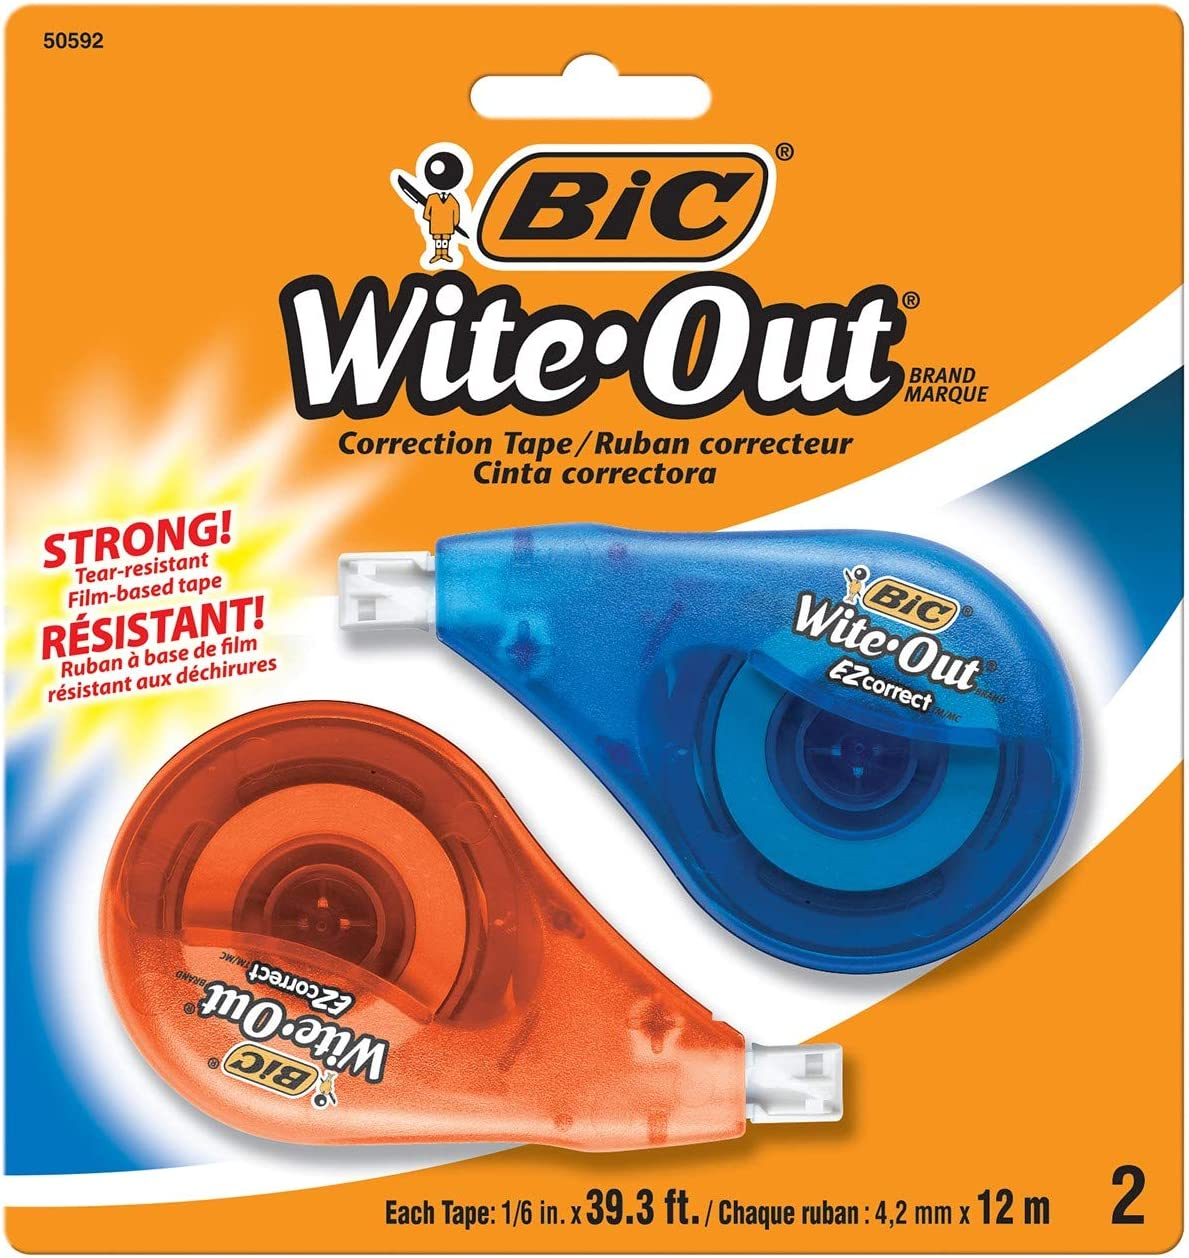 BIC Wite-Out EZ Correct Correction Tape, 2-Count : White Out : Office Products